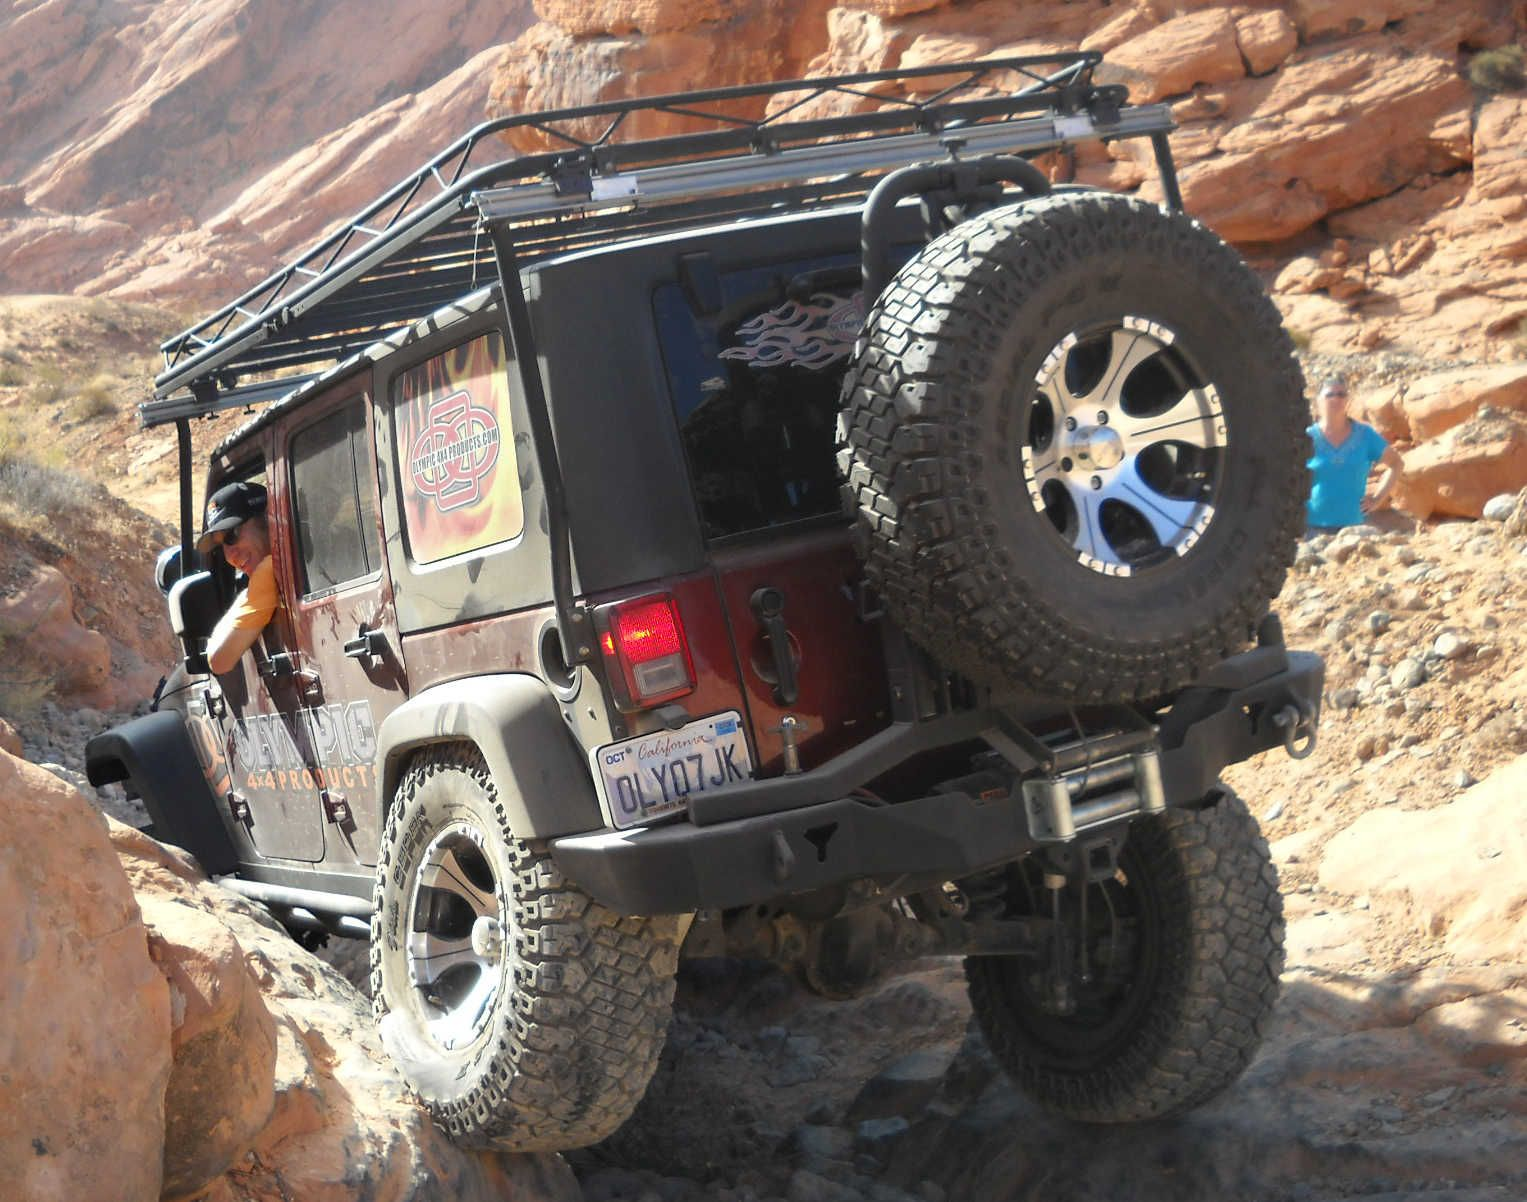 The New Olympic 4x4 Rear Bumper With Tire Swing Swings Out Amp